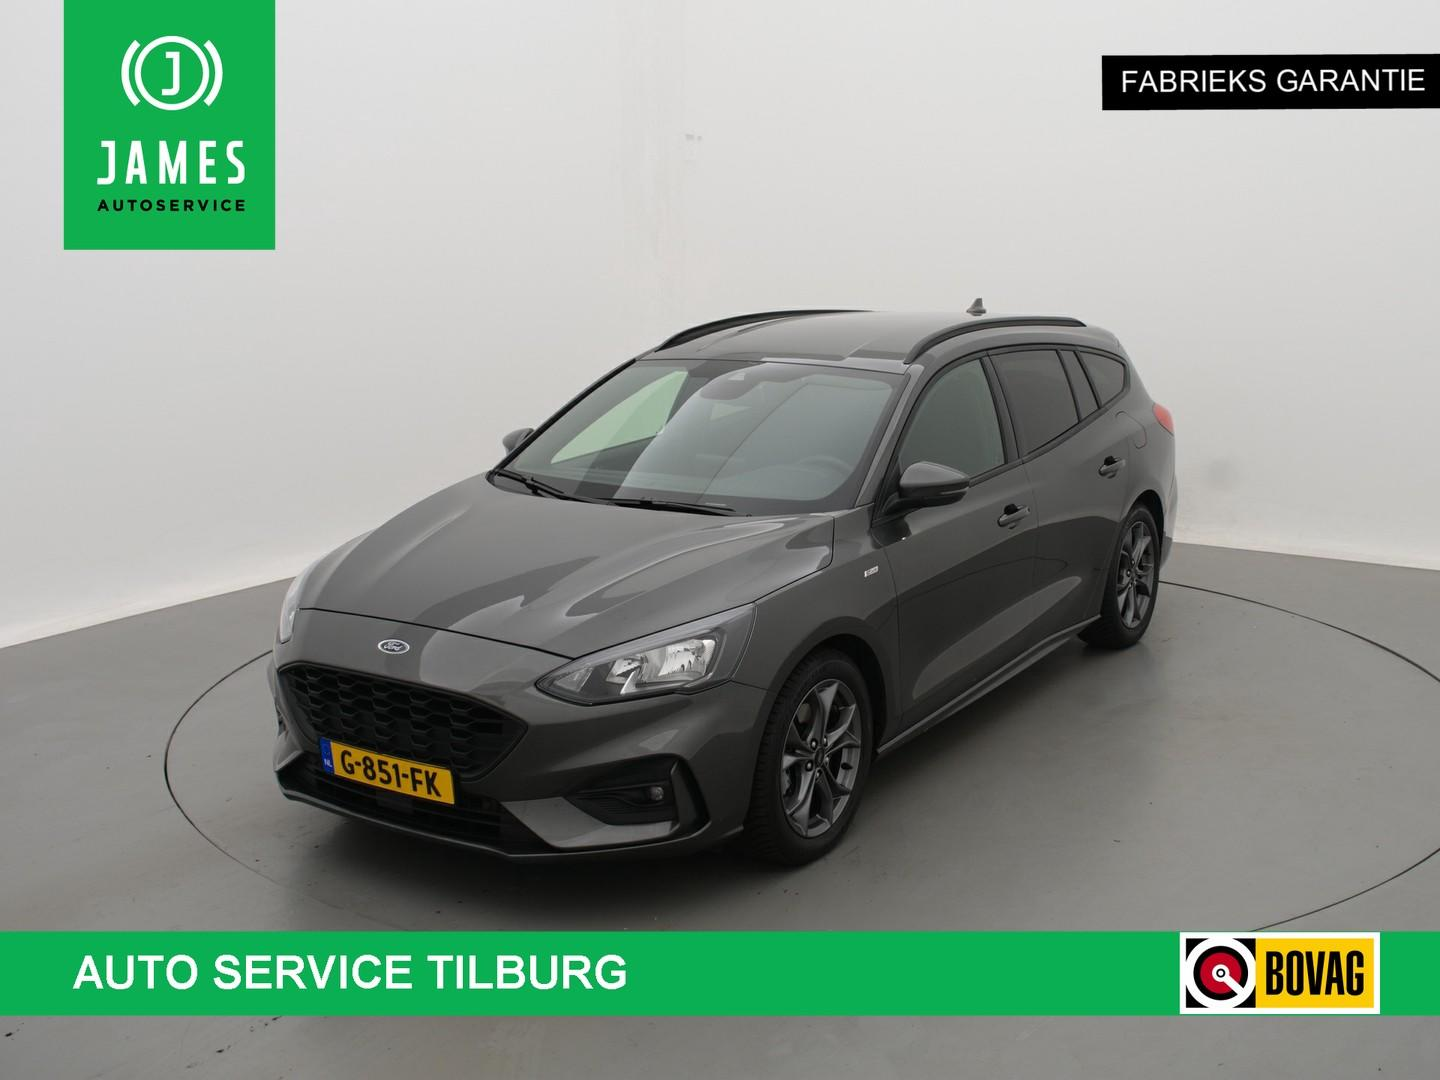 Ford Focus Wagon 1.0 eb automaat *126 pk* st-line navi led cruise winterpack